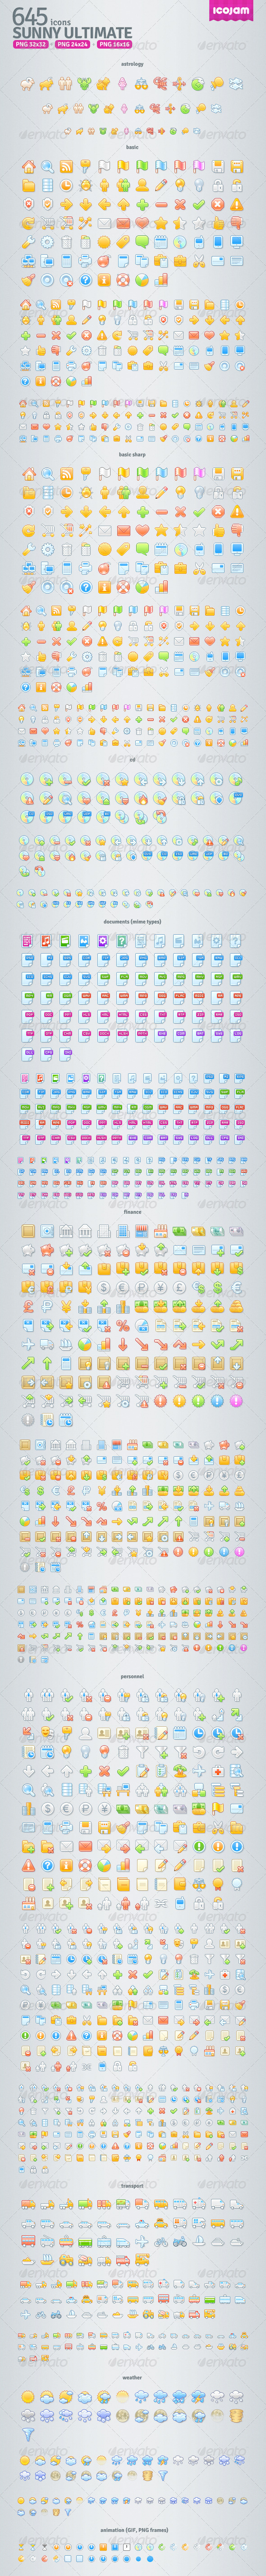 645 Sunny Raster Icons - Icons